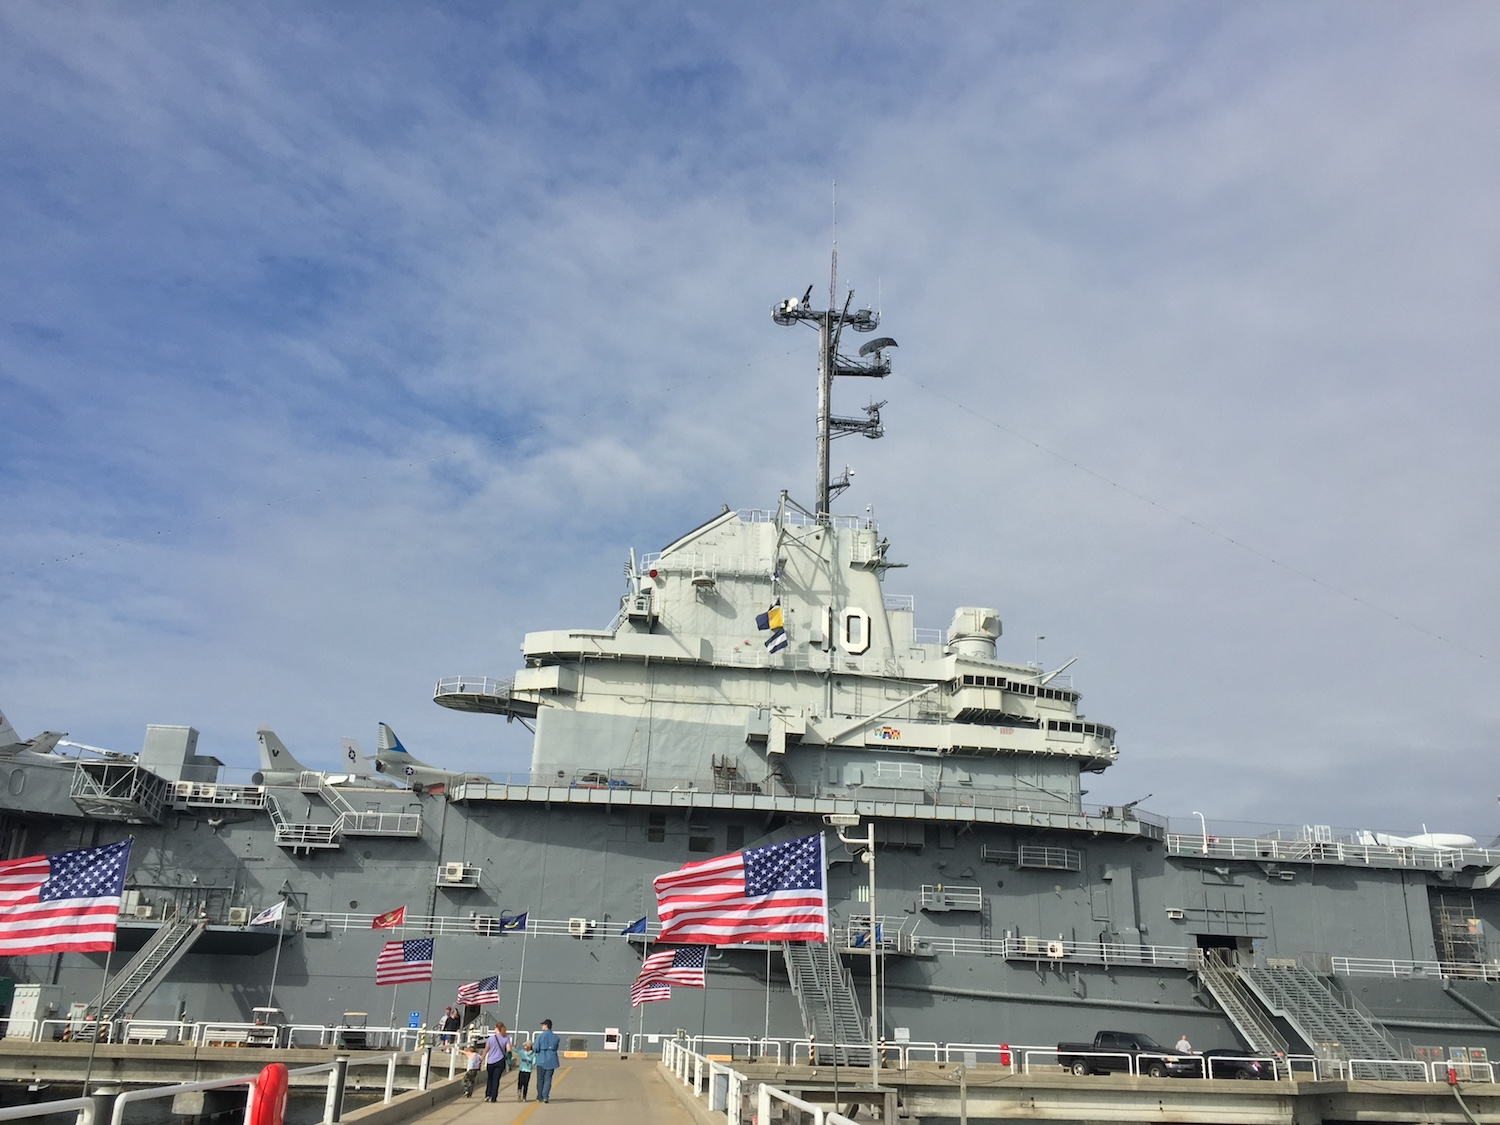 Patriots Point: USS Yorktown Naval Museum